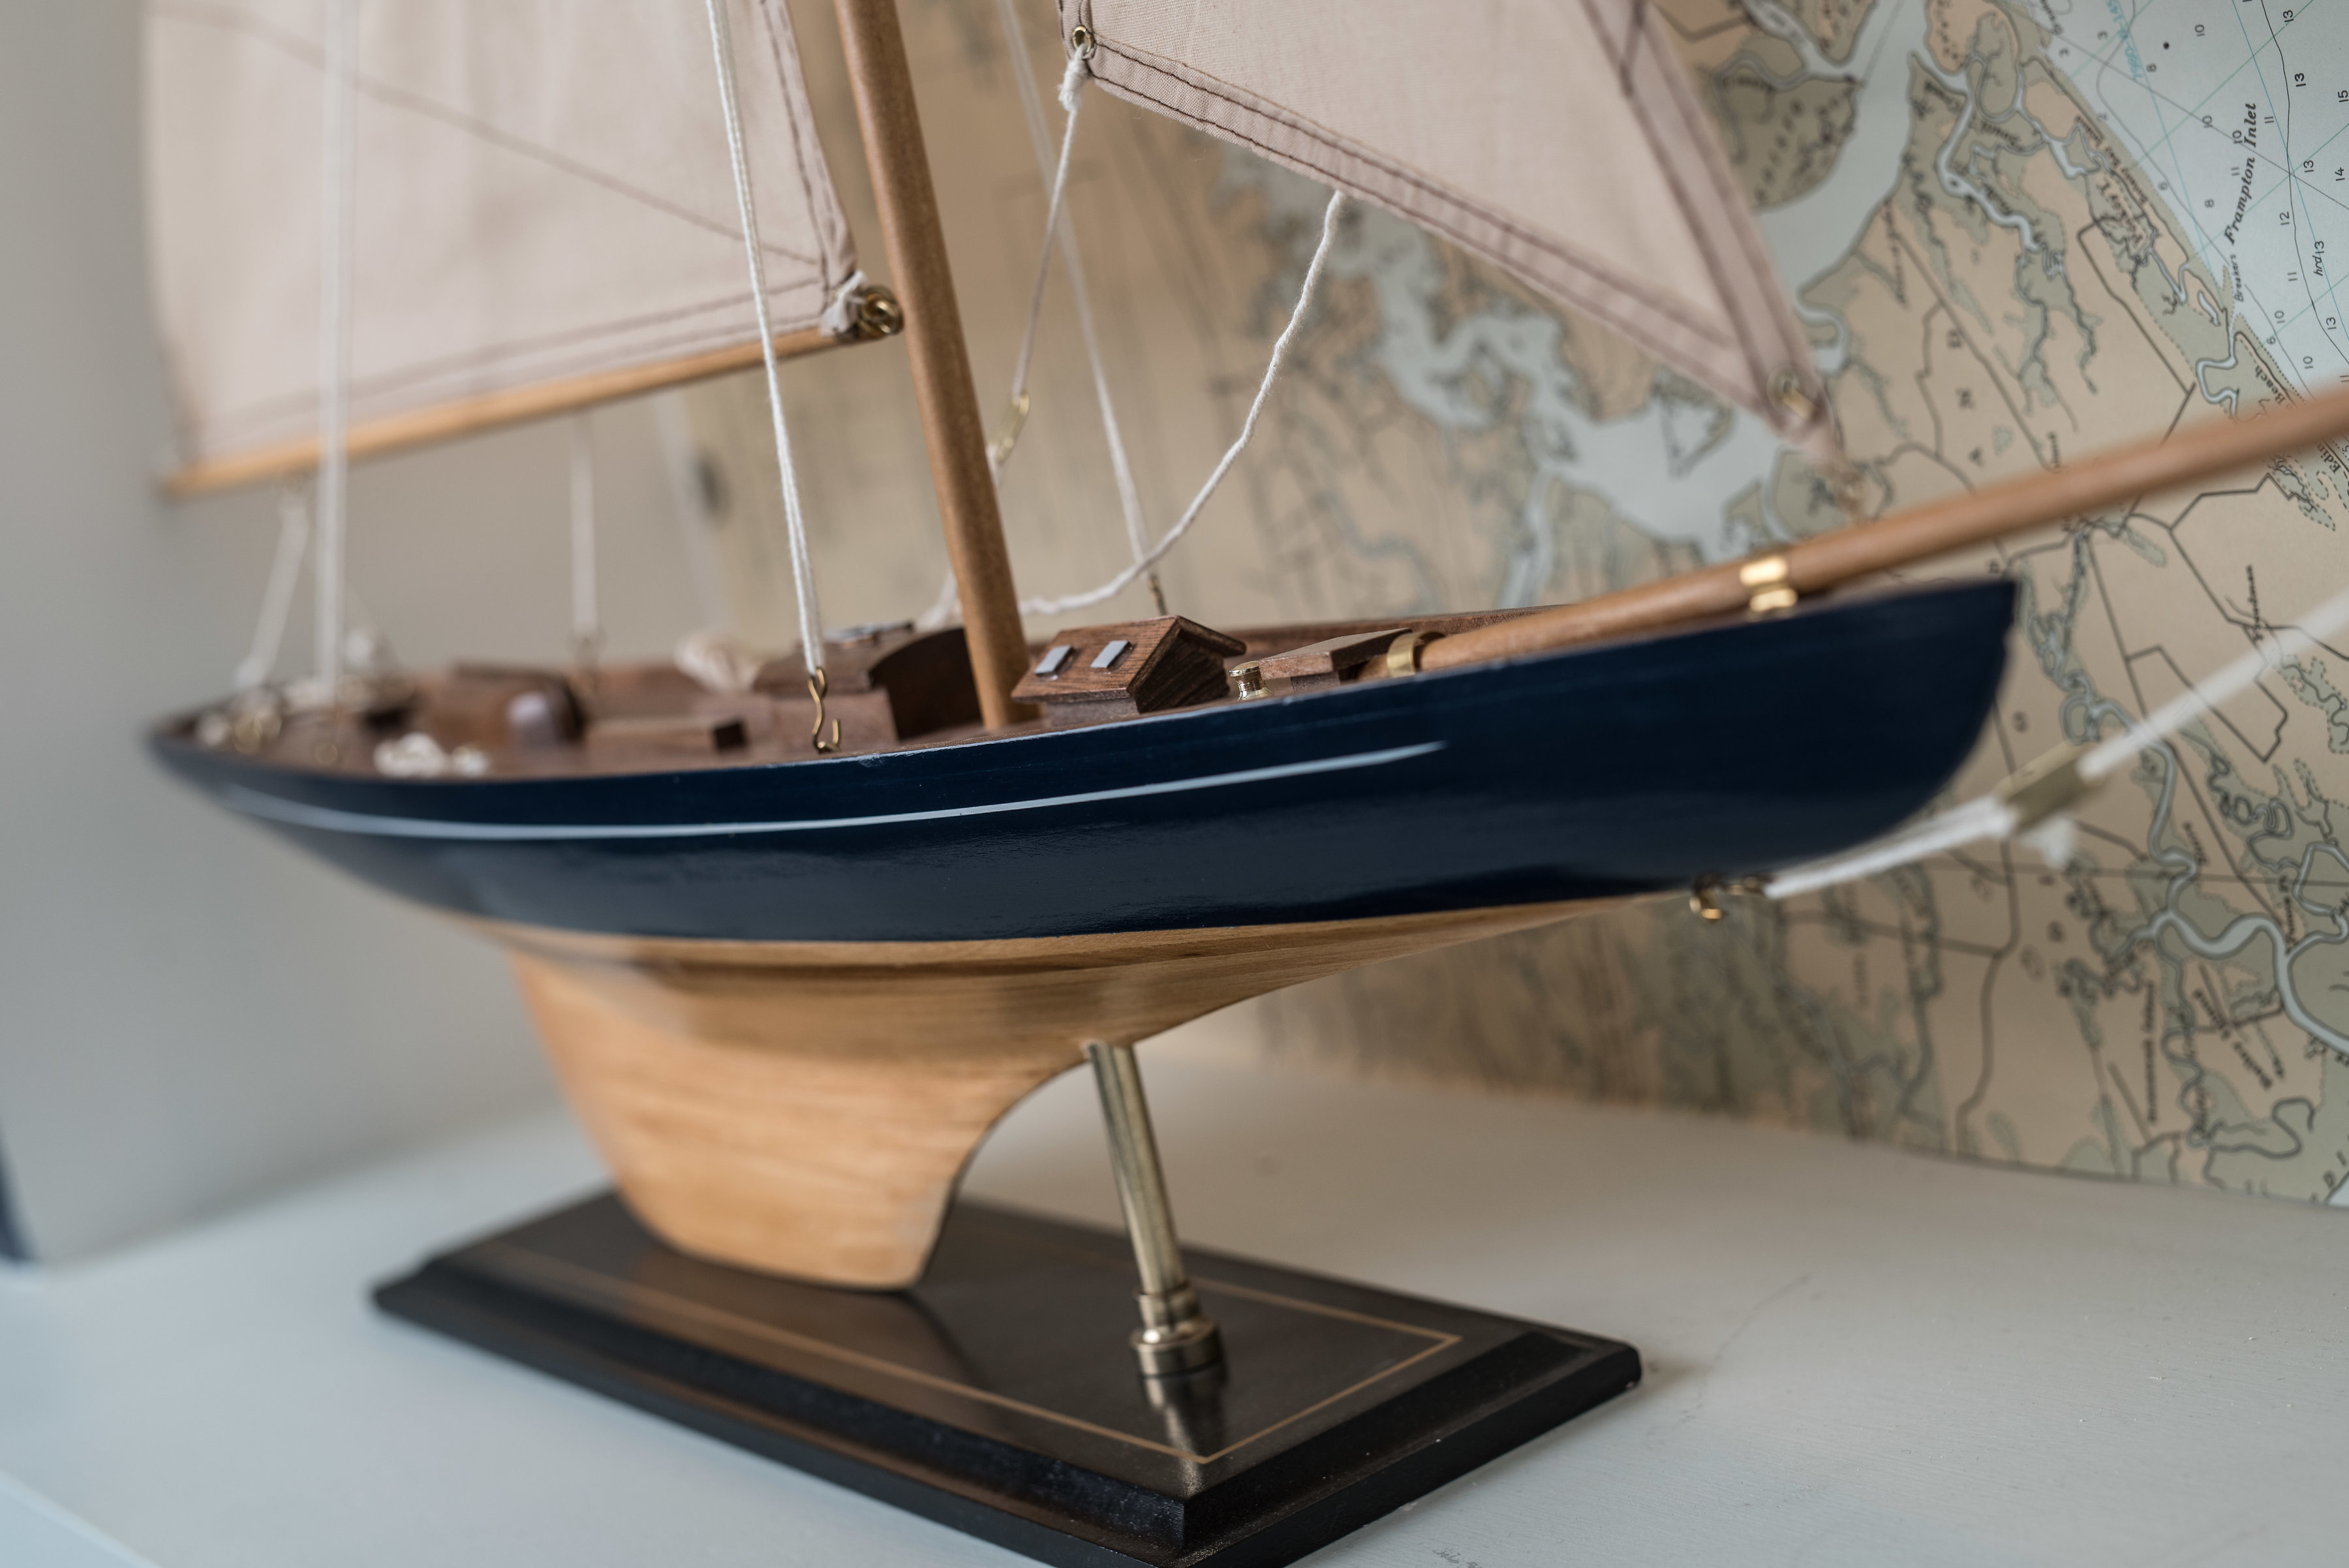 model ship, hotel decor